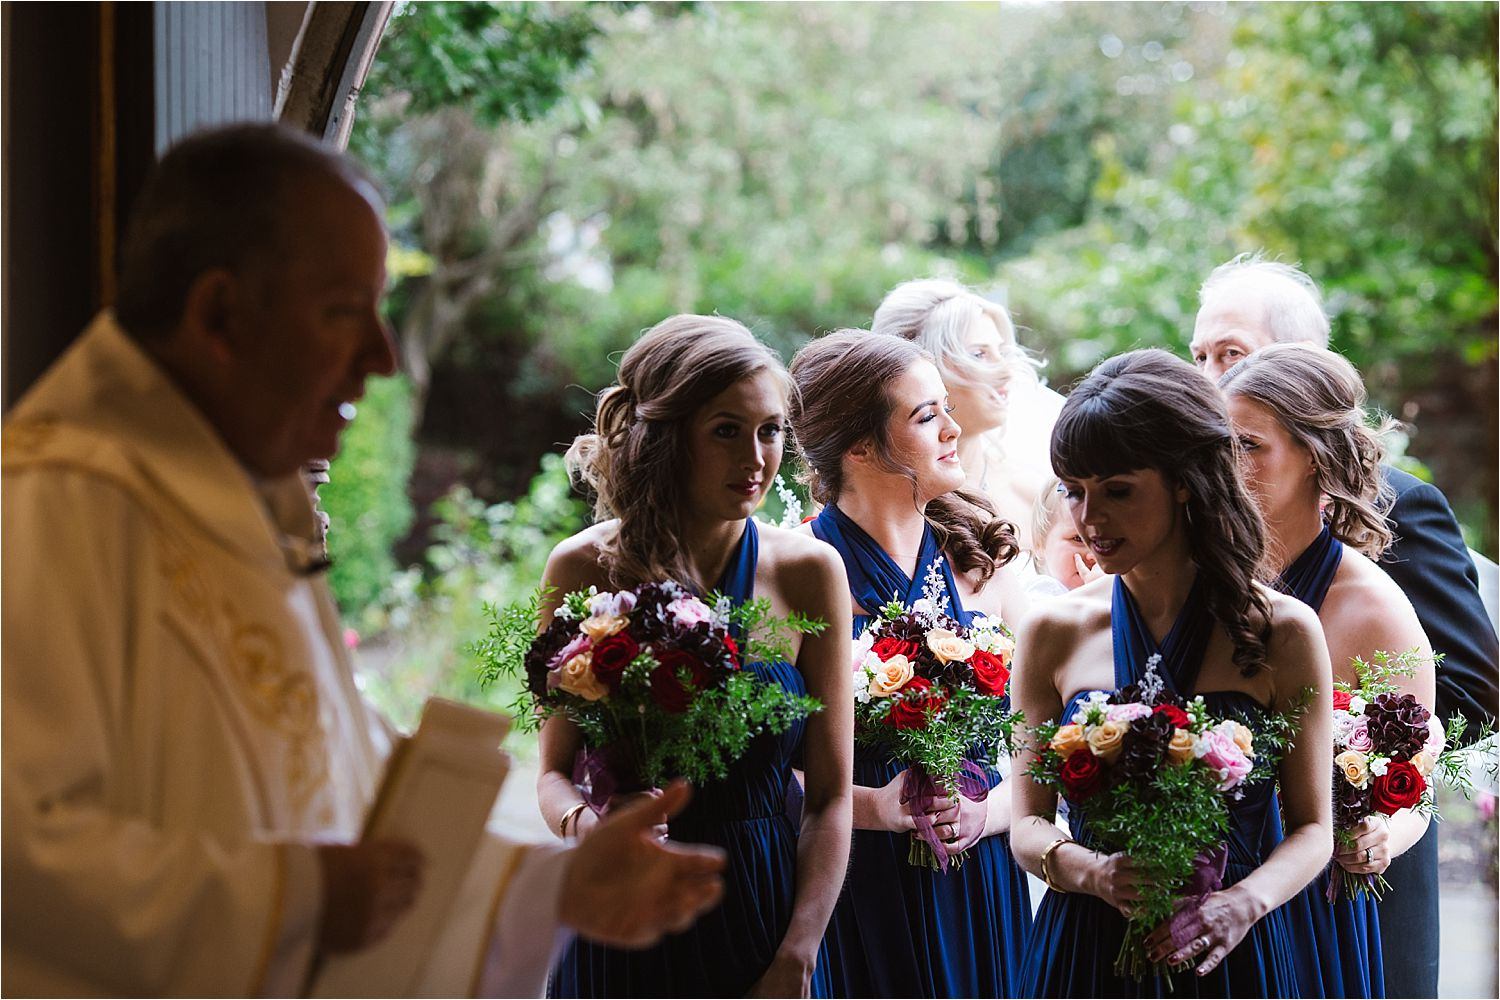 The bridal party outside the chutrch door. Bouquets by Deborah's Florist Barrow